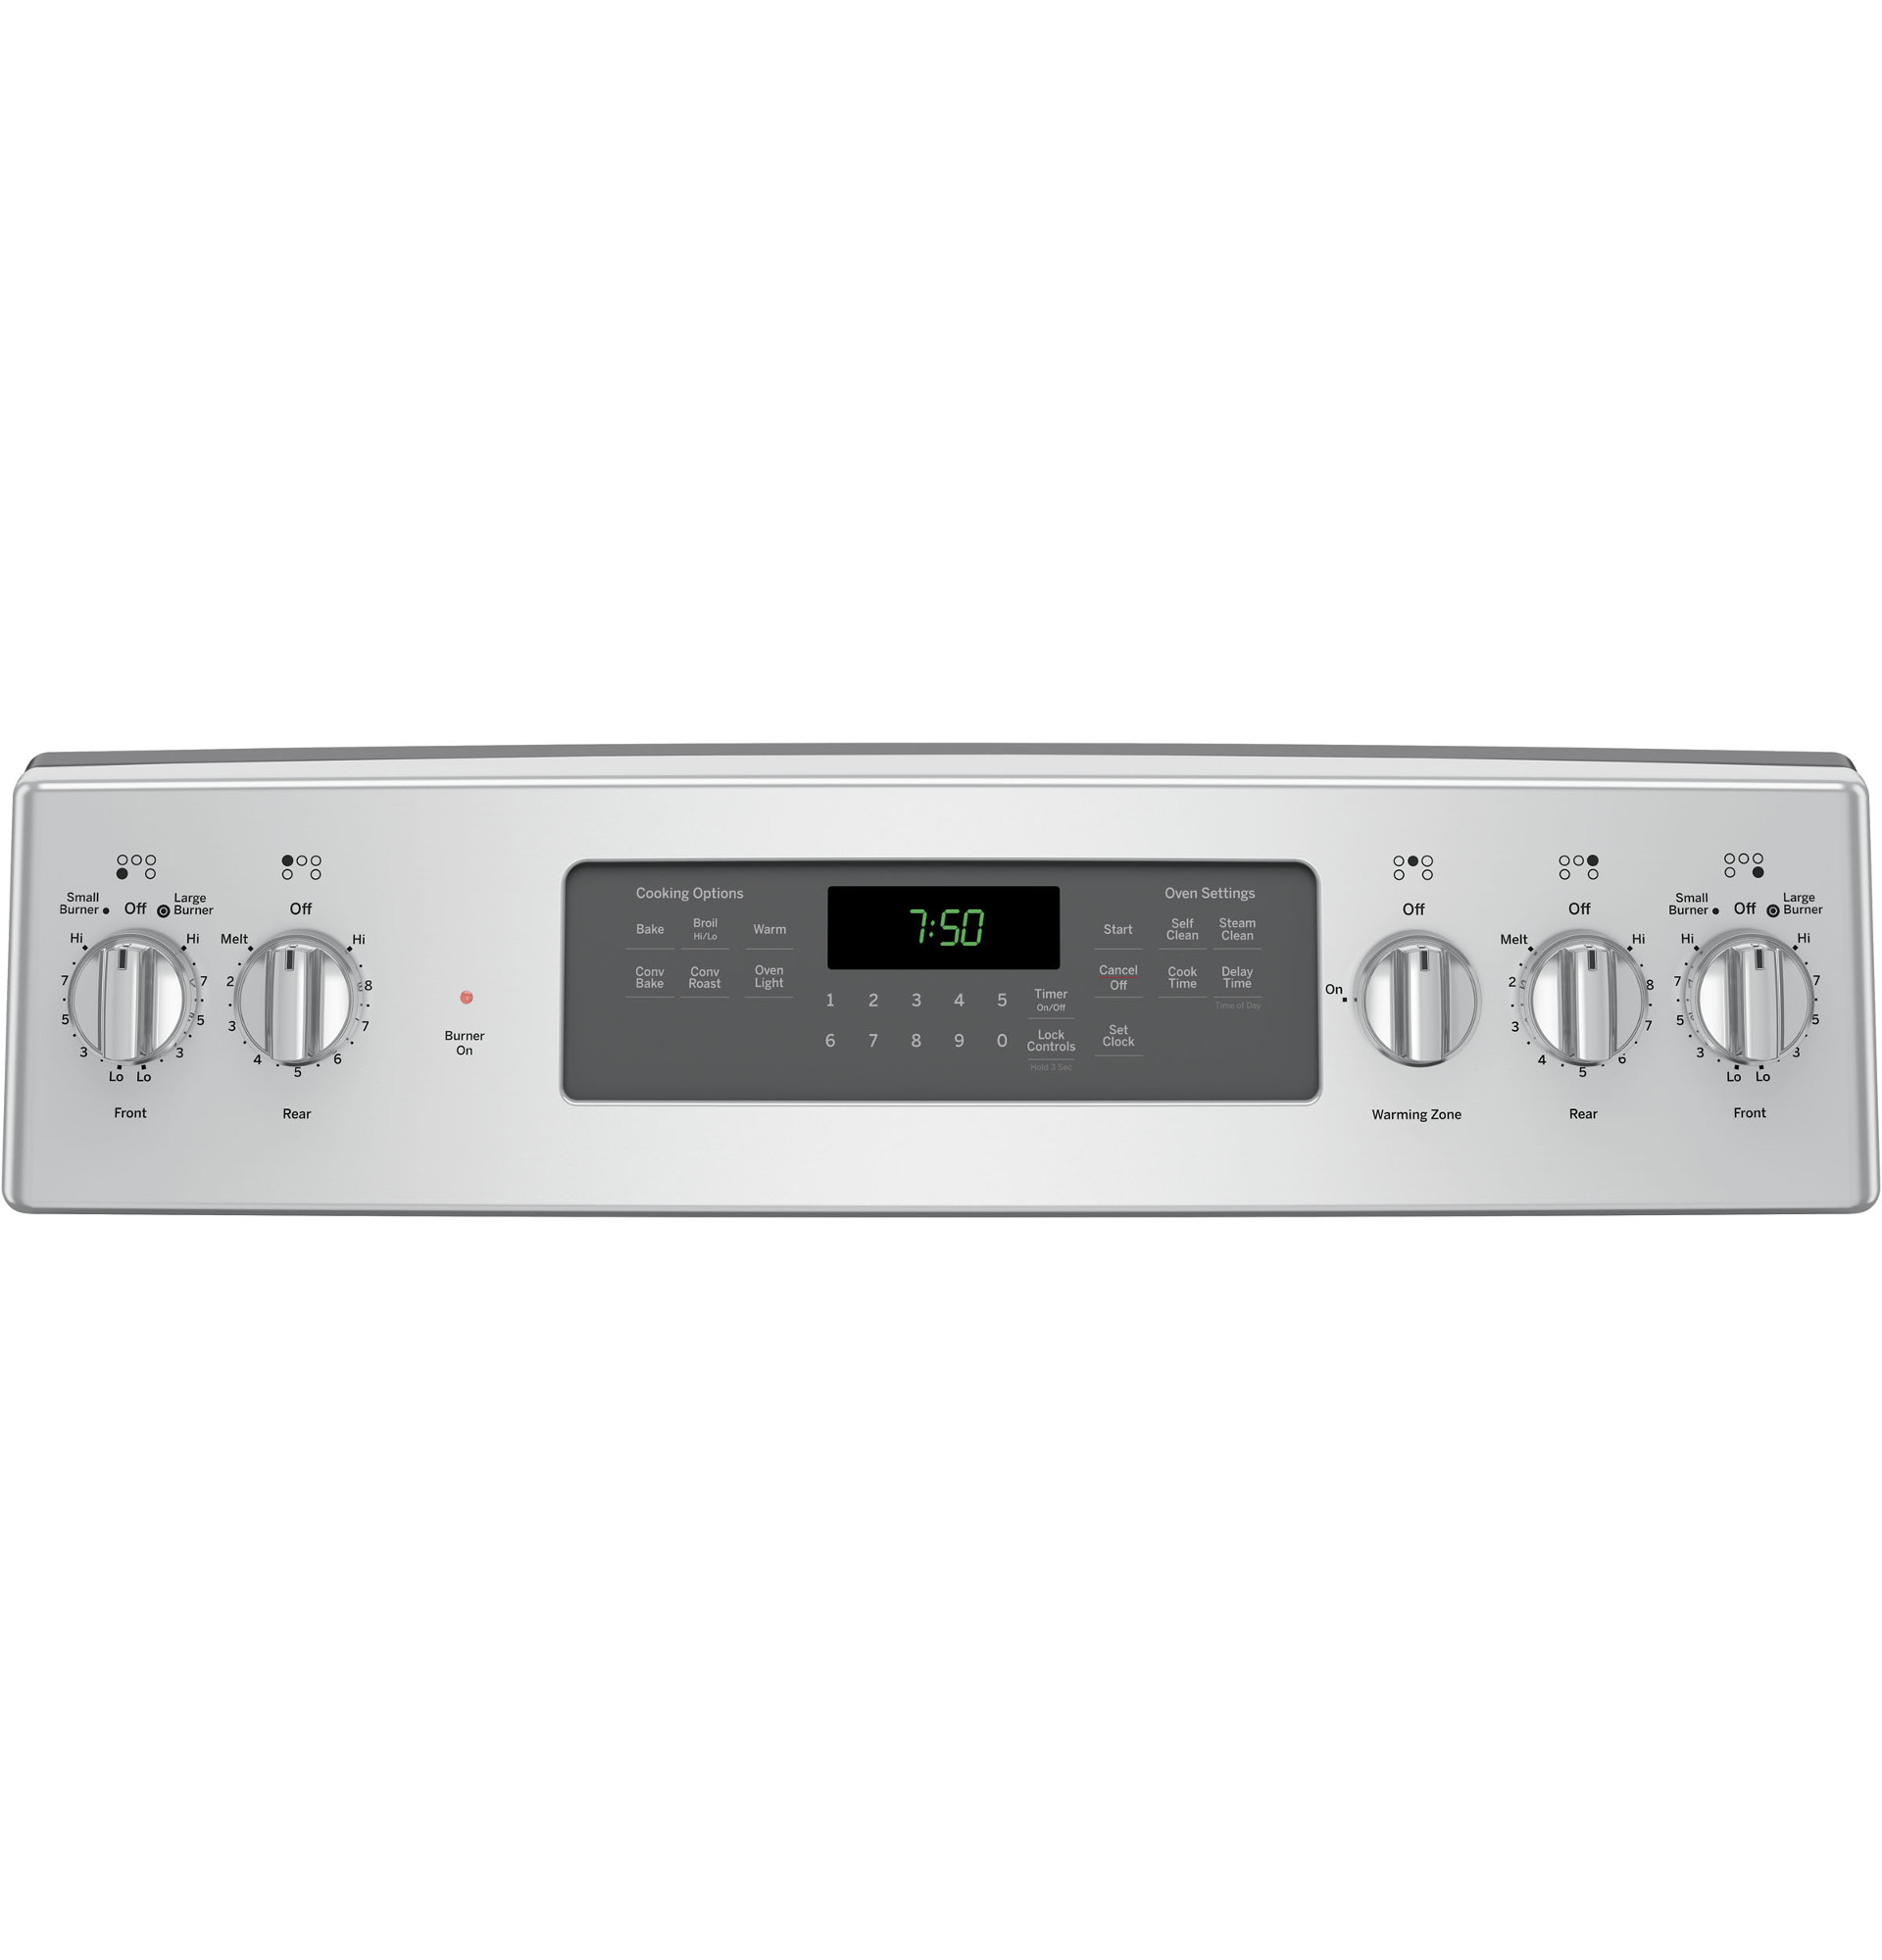 GE Appliances JB750SJSS 5.3 cu. ft. Freestanding Electric Range w/ True Convection - Stainless Steel